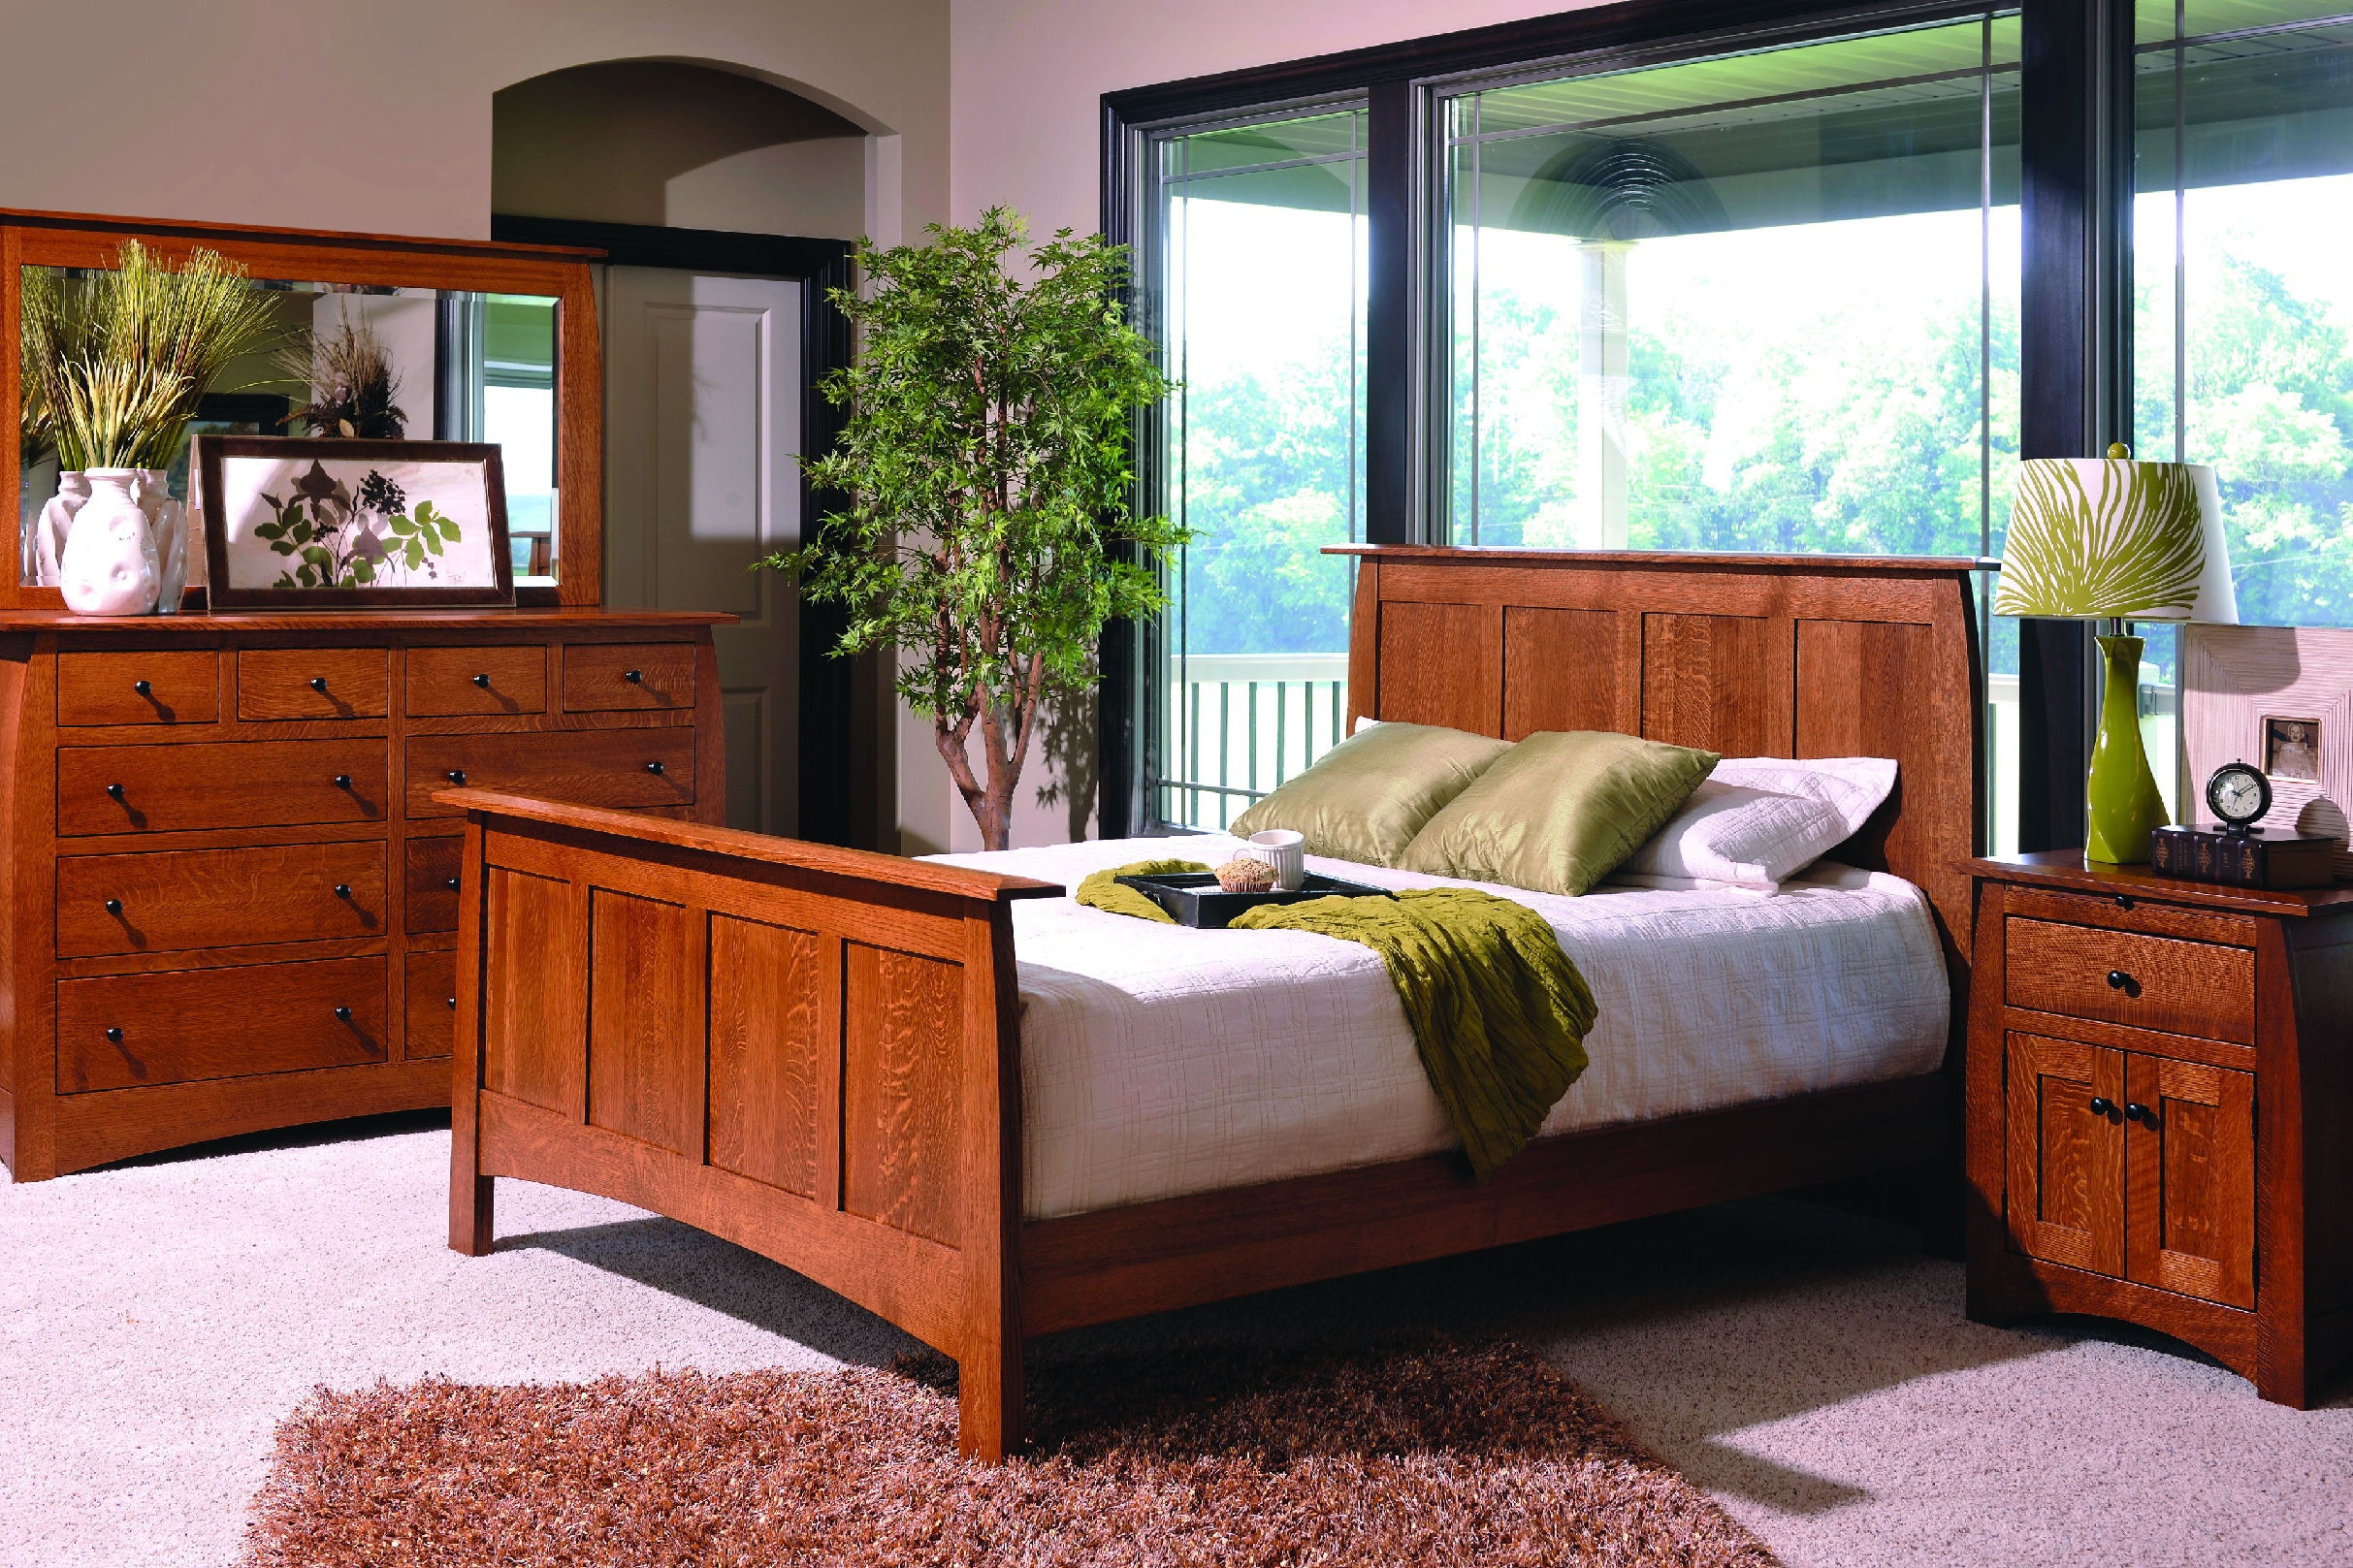 YUTZY WOODWORKING Bedroom Vail Bed 64113   Whitley Furniture Galleries    Raleigh, NC